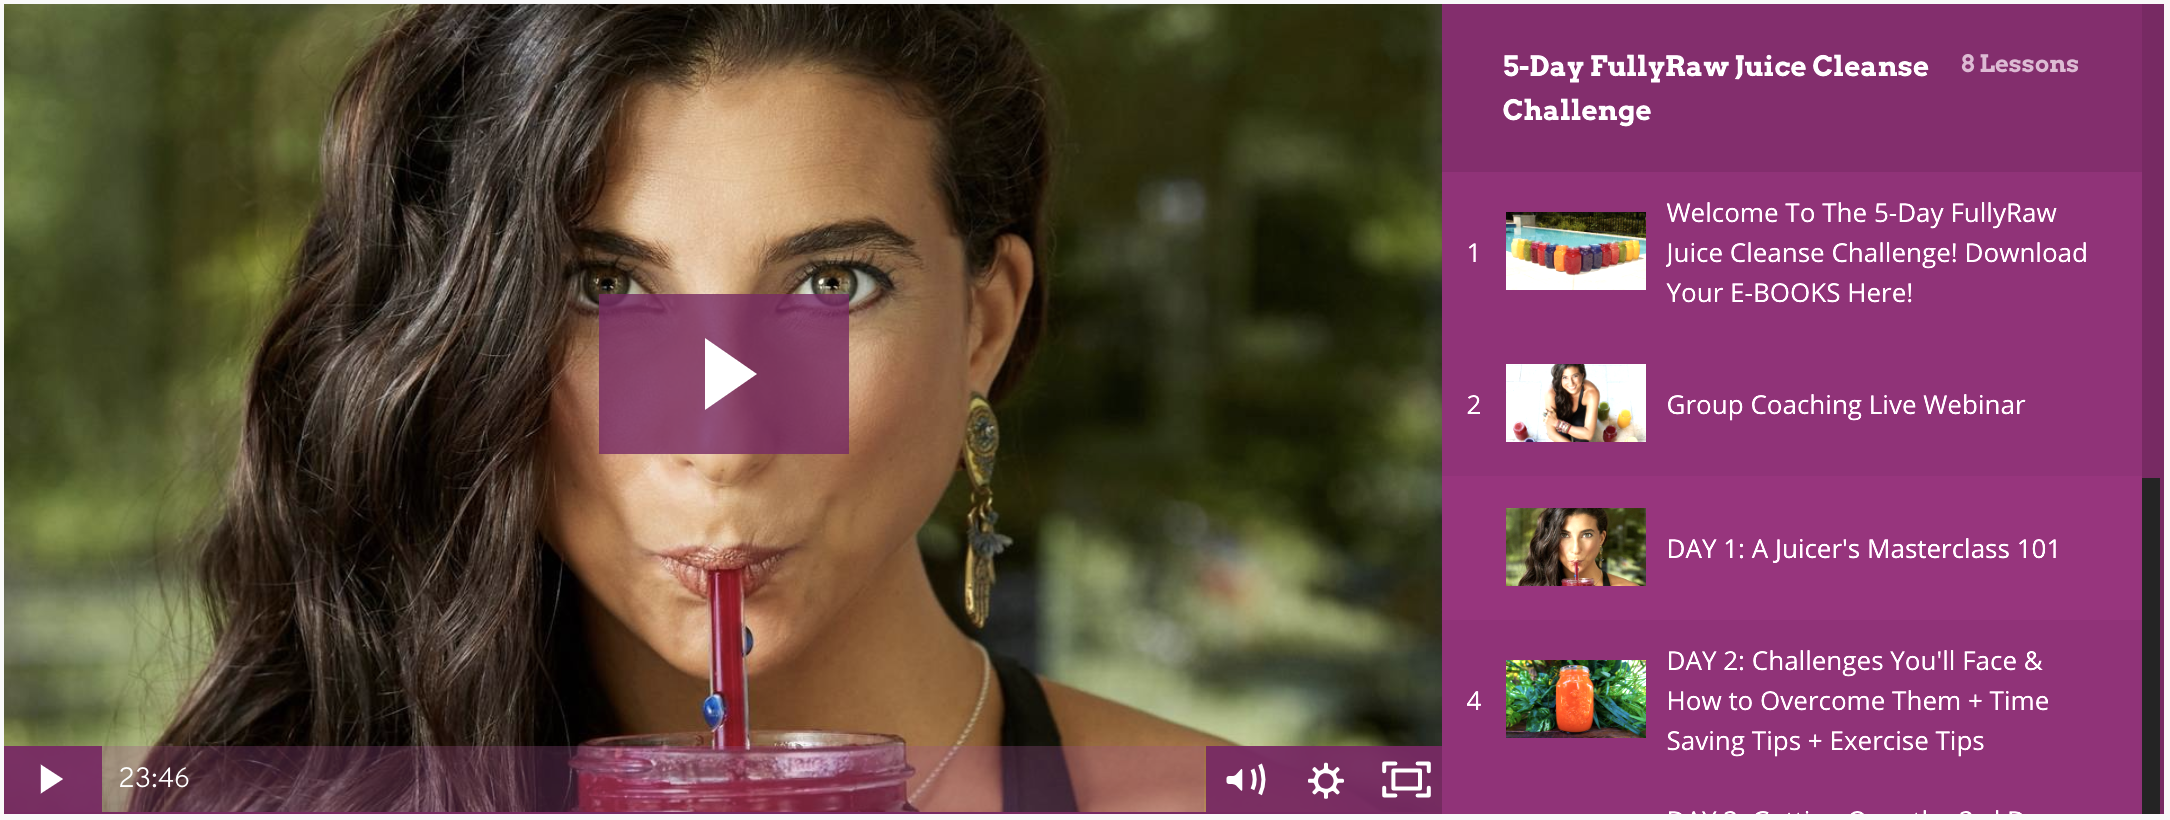 Join The Fullyraw 5 Day Juice Cleanse Challenge